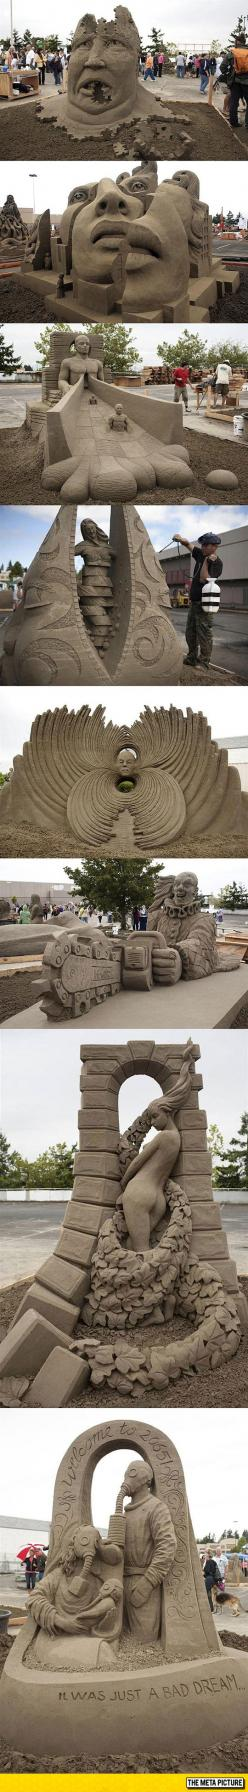 Sand Sculpting At Its Best